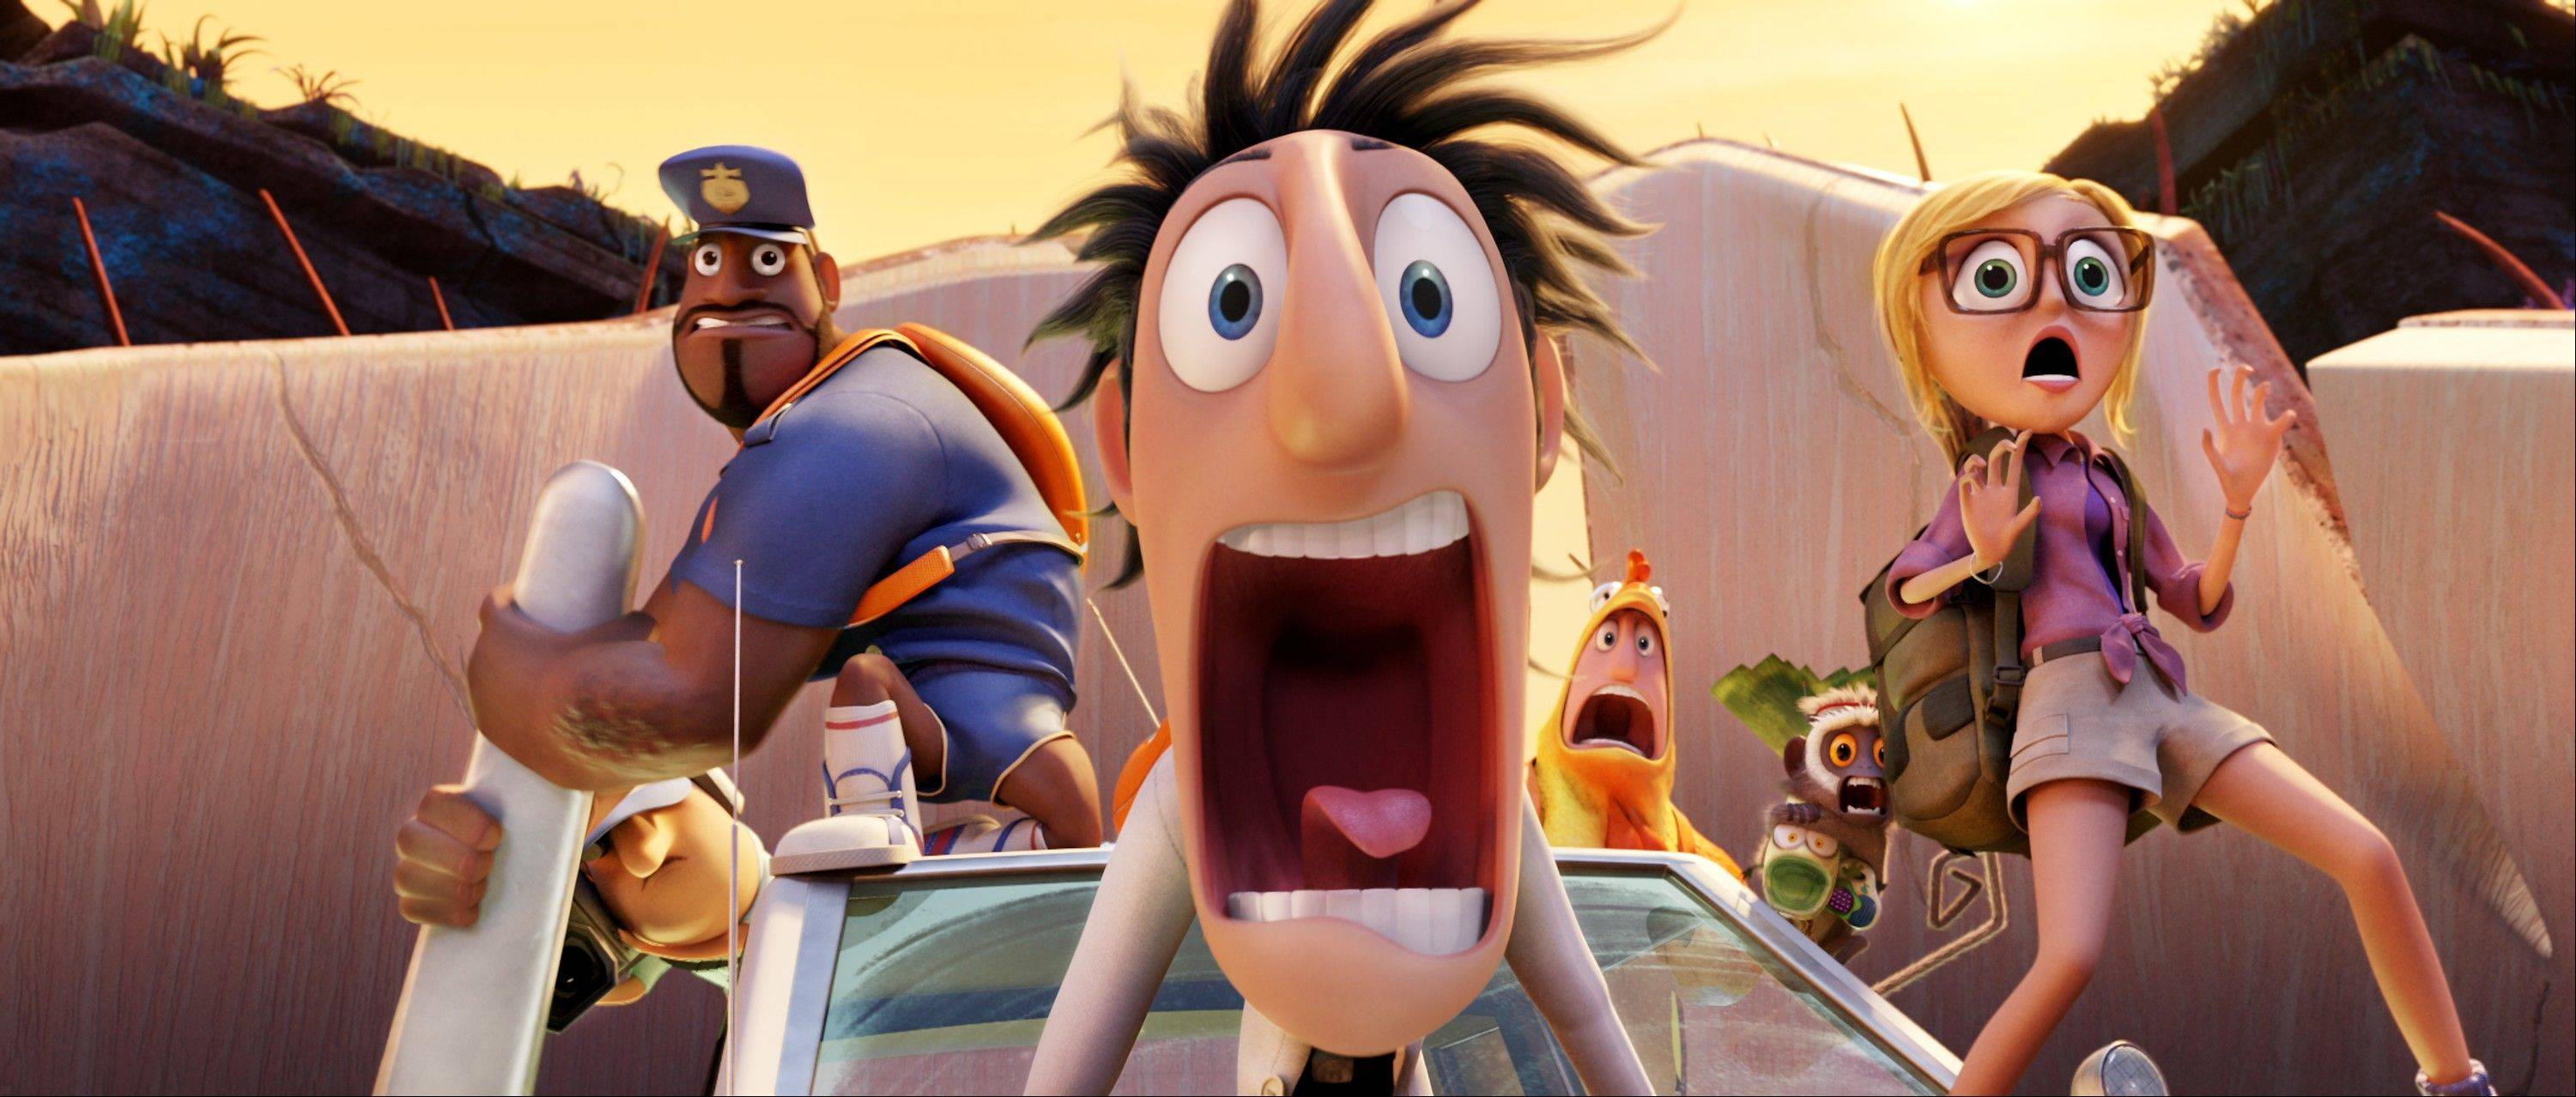 "This film image released by Sony Pictures Animation shows characters, from left, Earl, voiced by Terry Crews, Flint, voiced by Bill Hader, and Sam, voiced by Anna Faris in a scene from ""Cloudy with a Chance of Meatballs."" The animated sequel brought in $35 million in its first weekend of release."